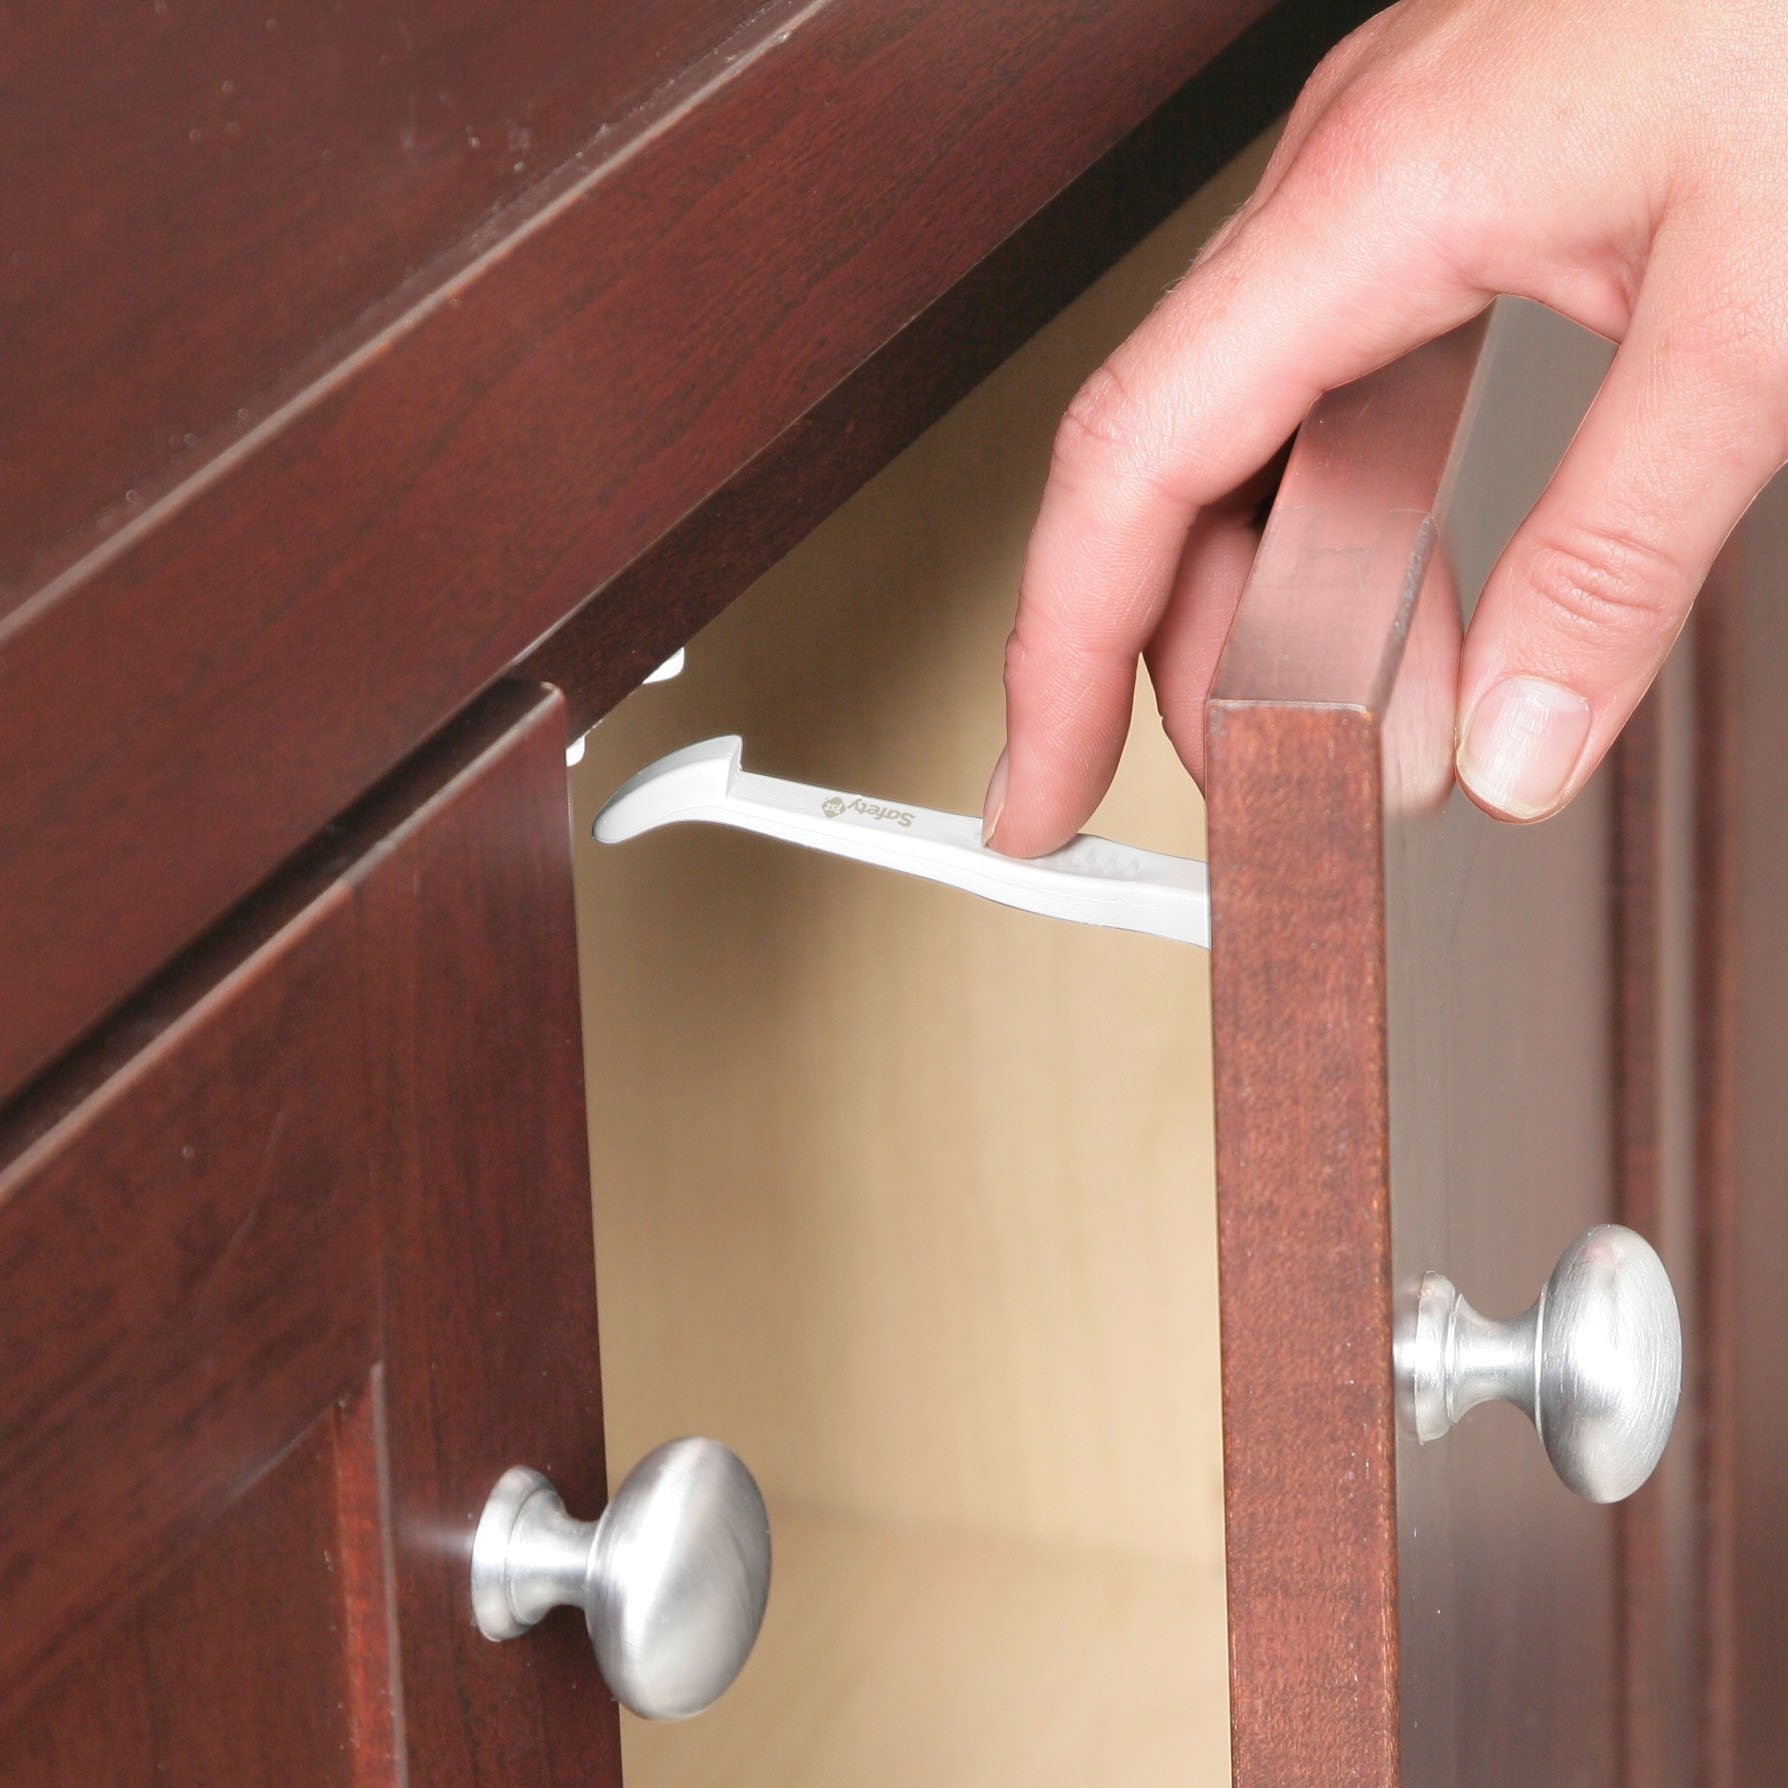 Safety 1st Cabinet and Drawer Latches, 7-Count by Safety 1st (Image #4)